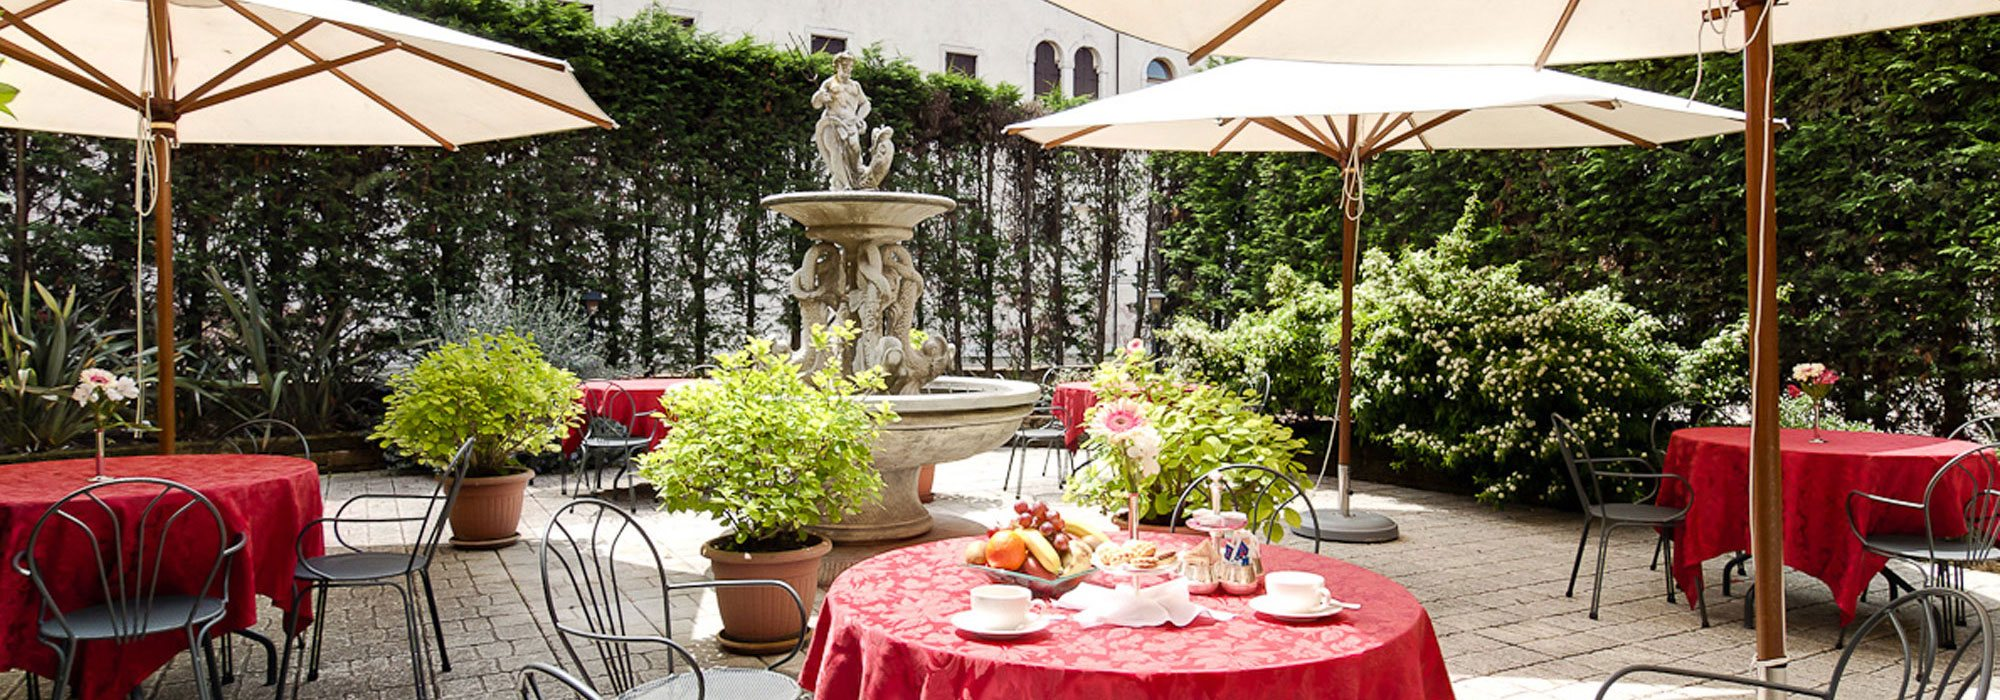 hotel belle arti venice reviews